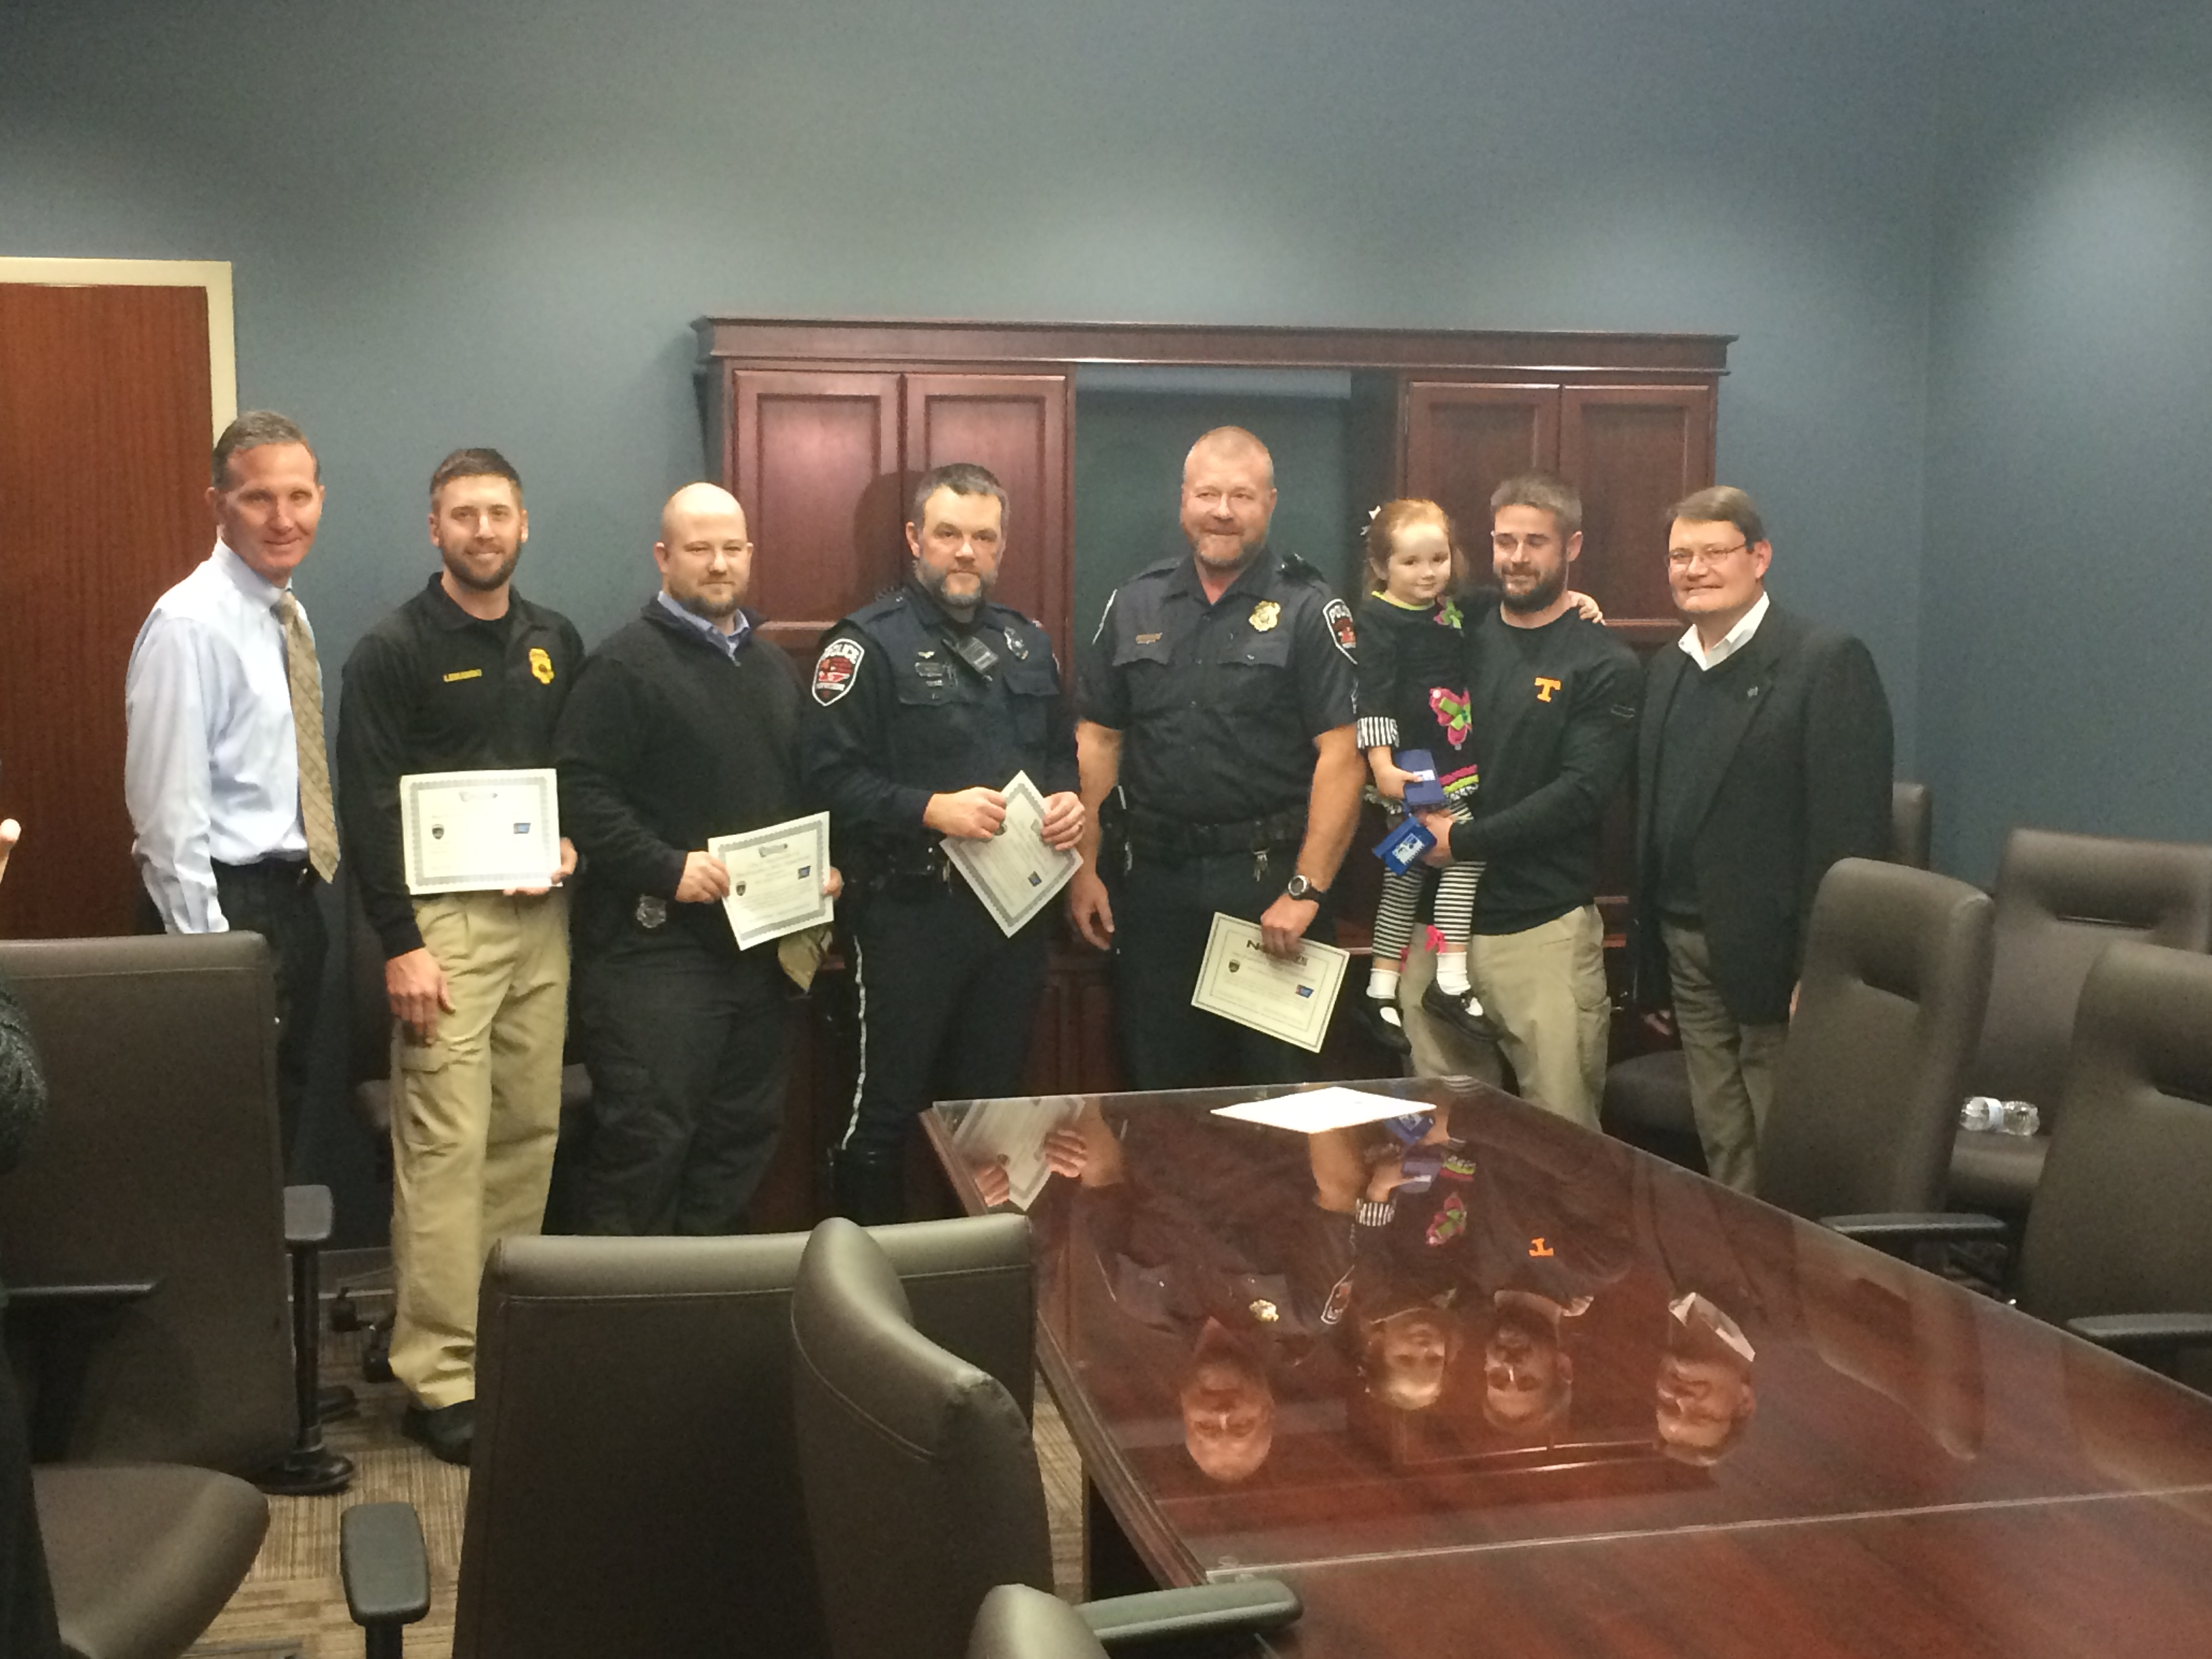 Officers grow beards for charity; Donate over $1,400 to American Cancer Society